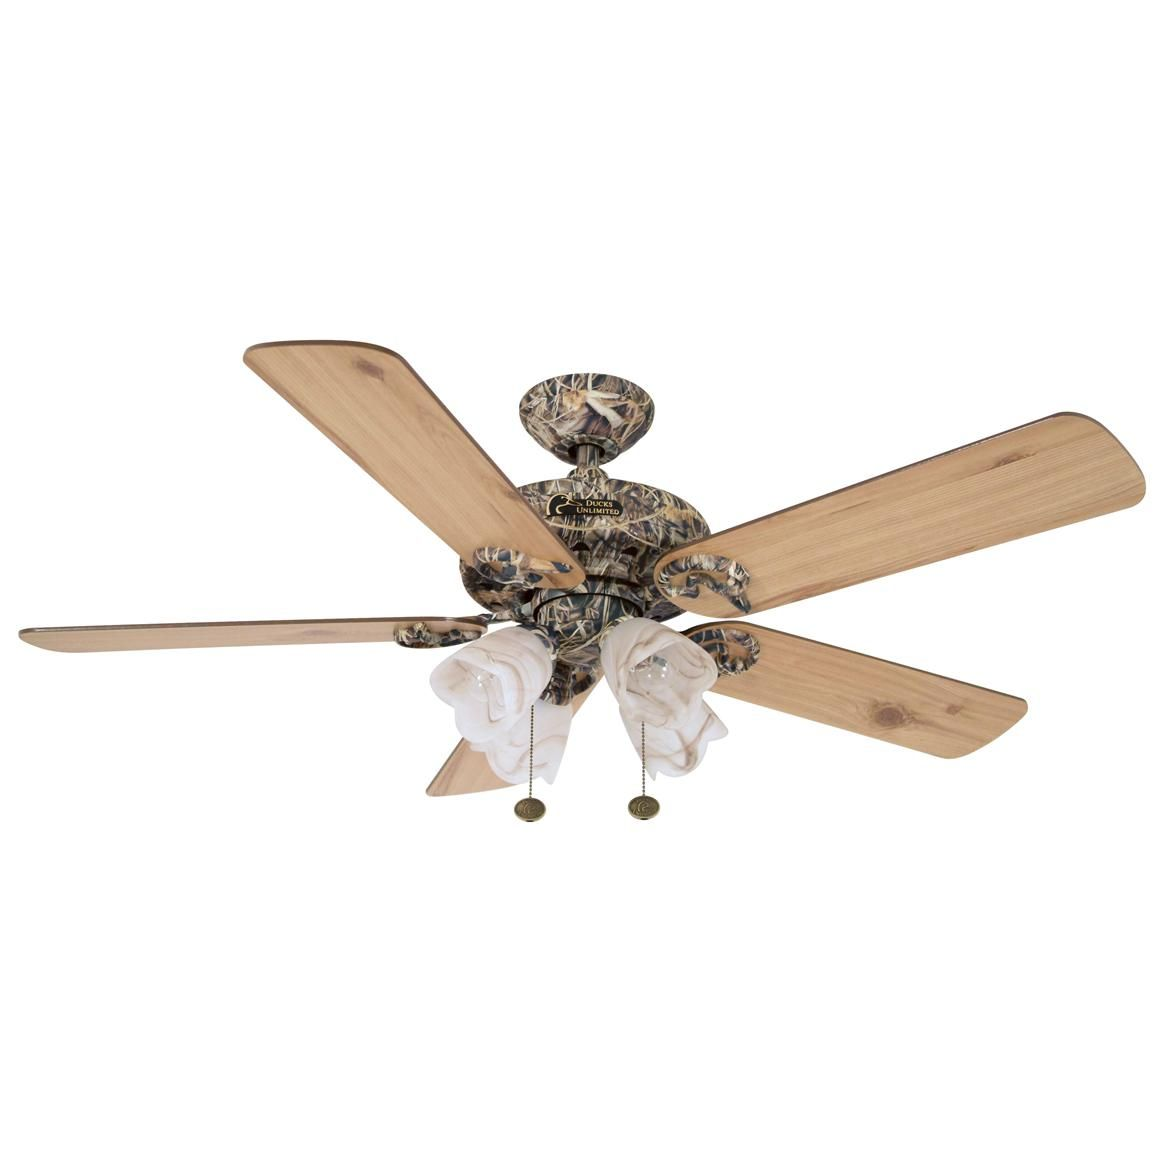 Ducks Unlimited MAX4 Camouflage Ceiling Fan with with